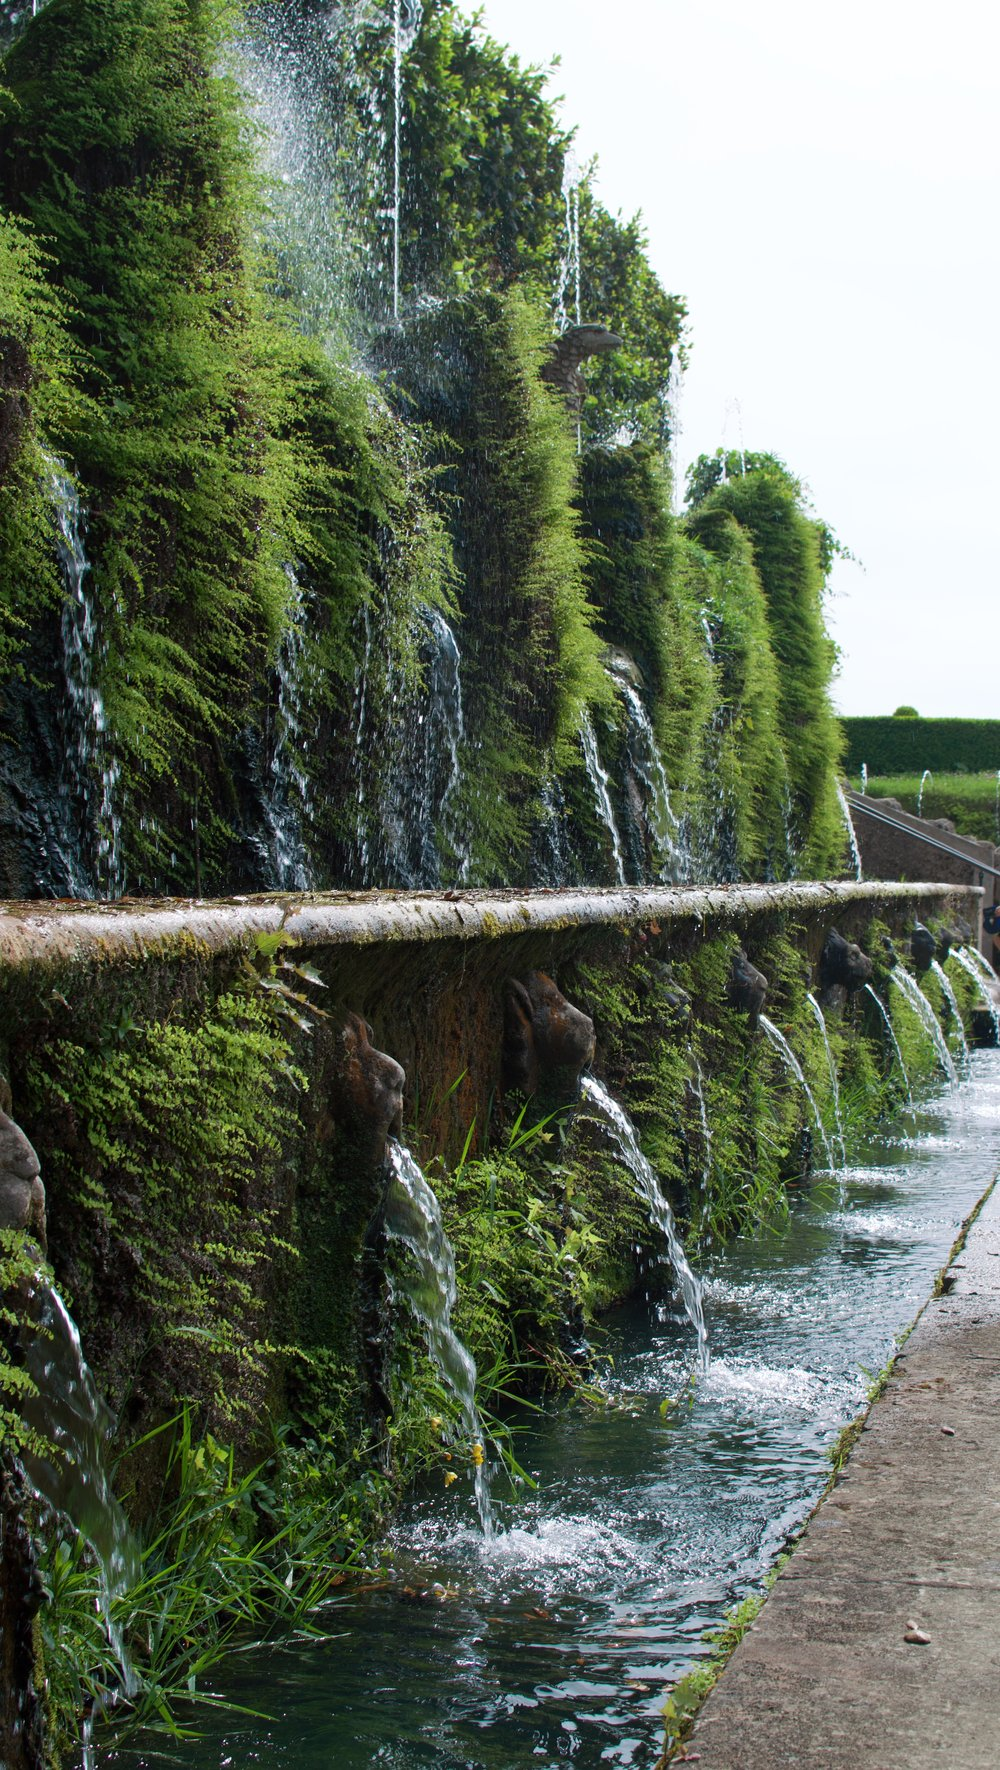 Hundred Fountains: Representing the Roman aqueducts, each little mask that spouts water is different!